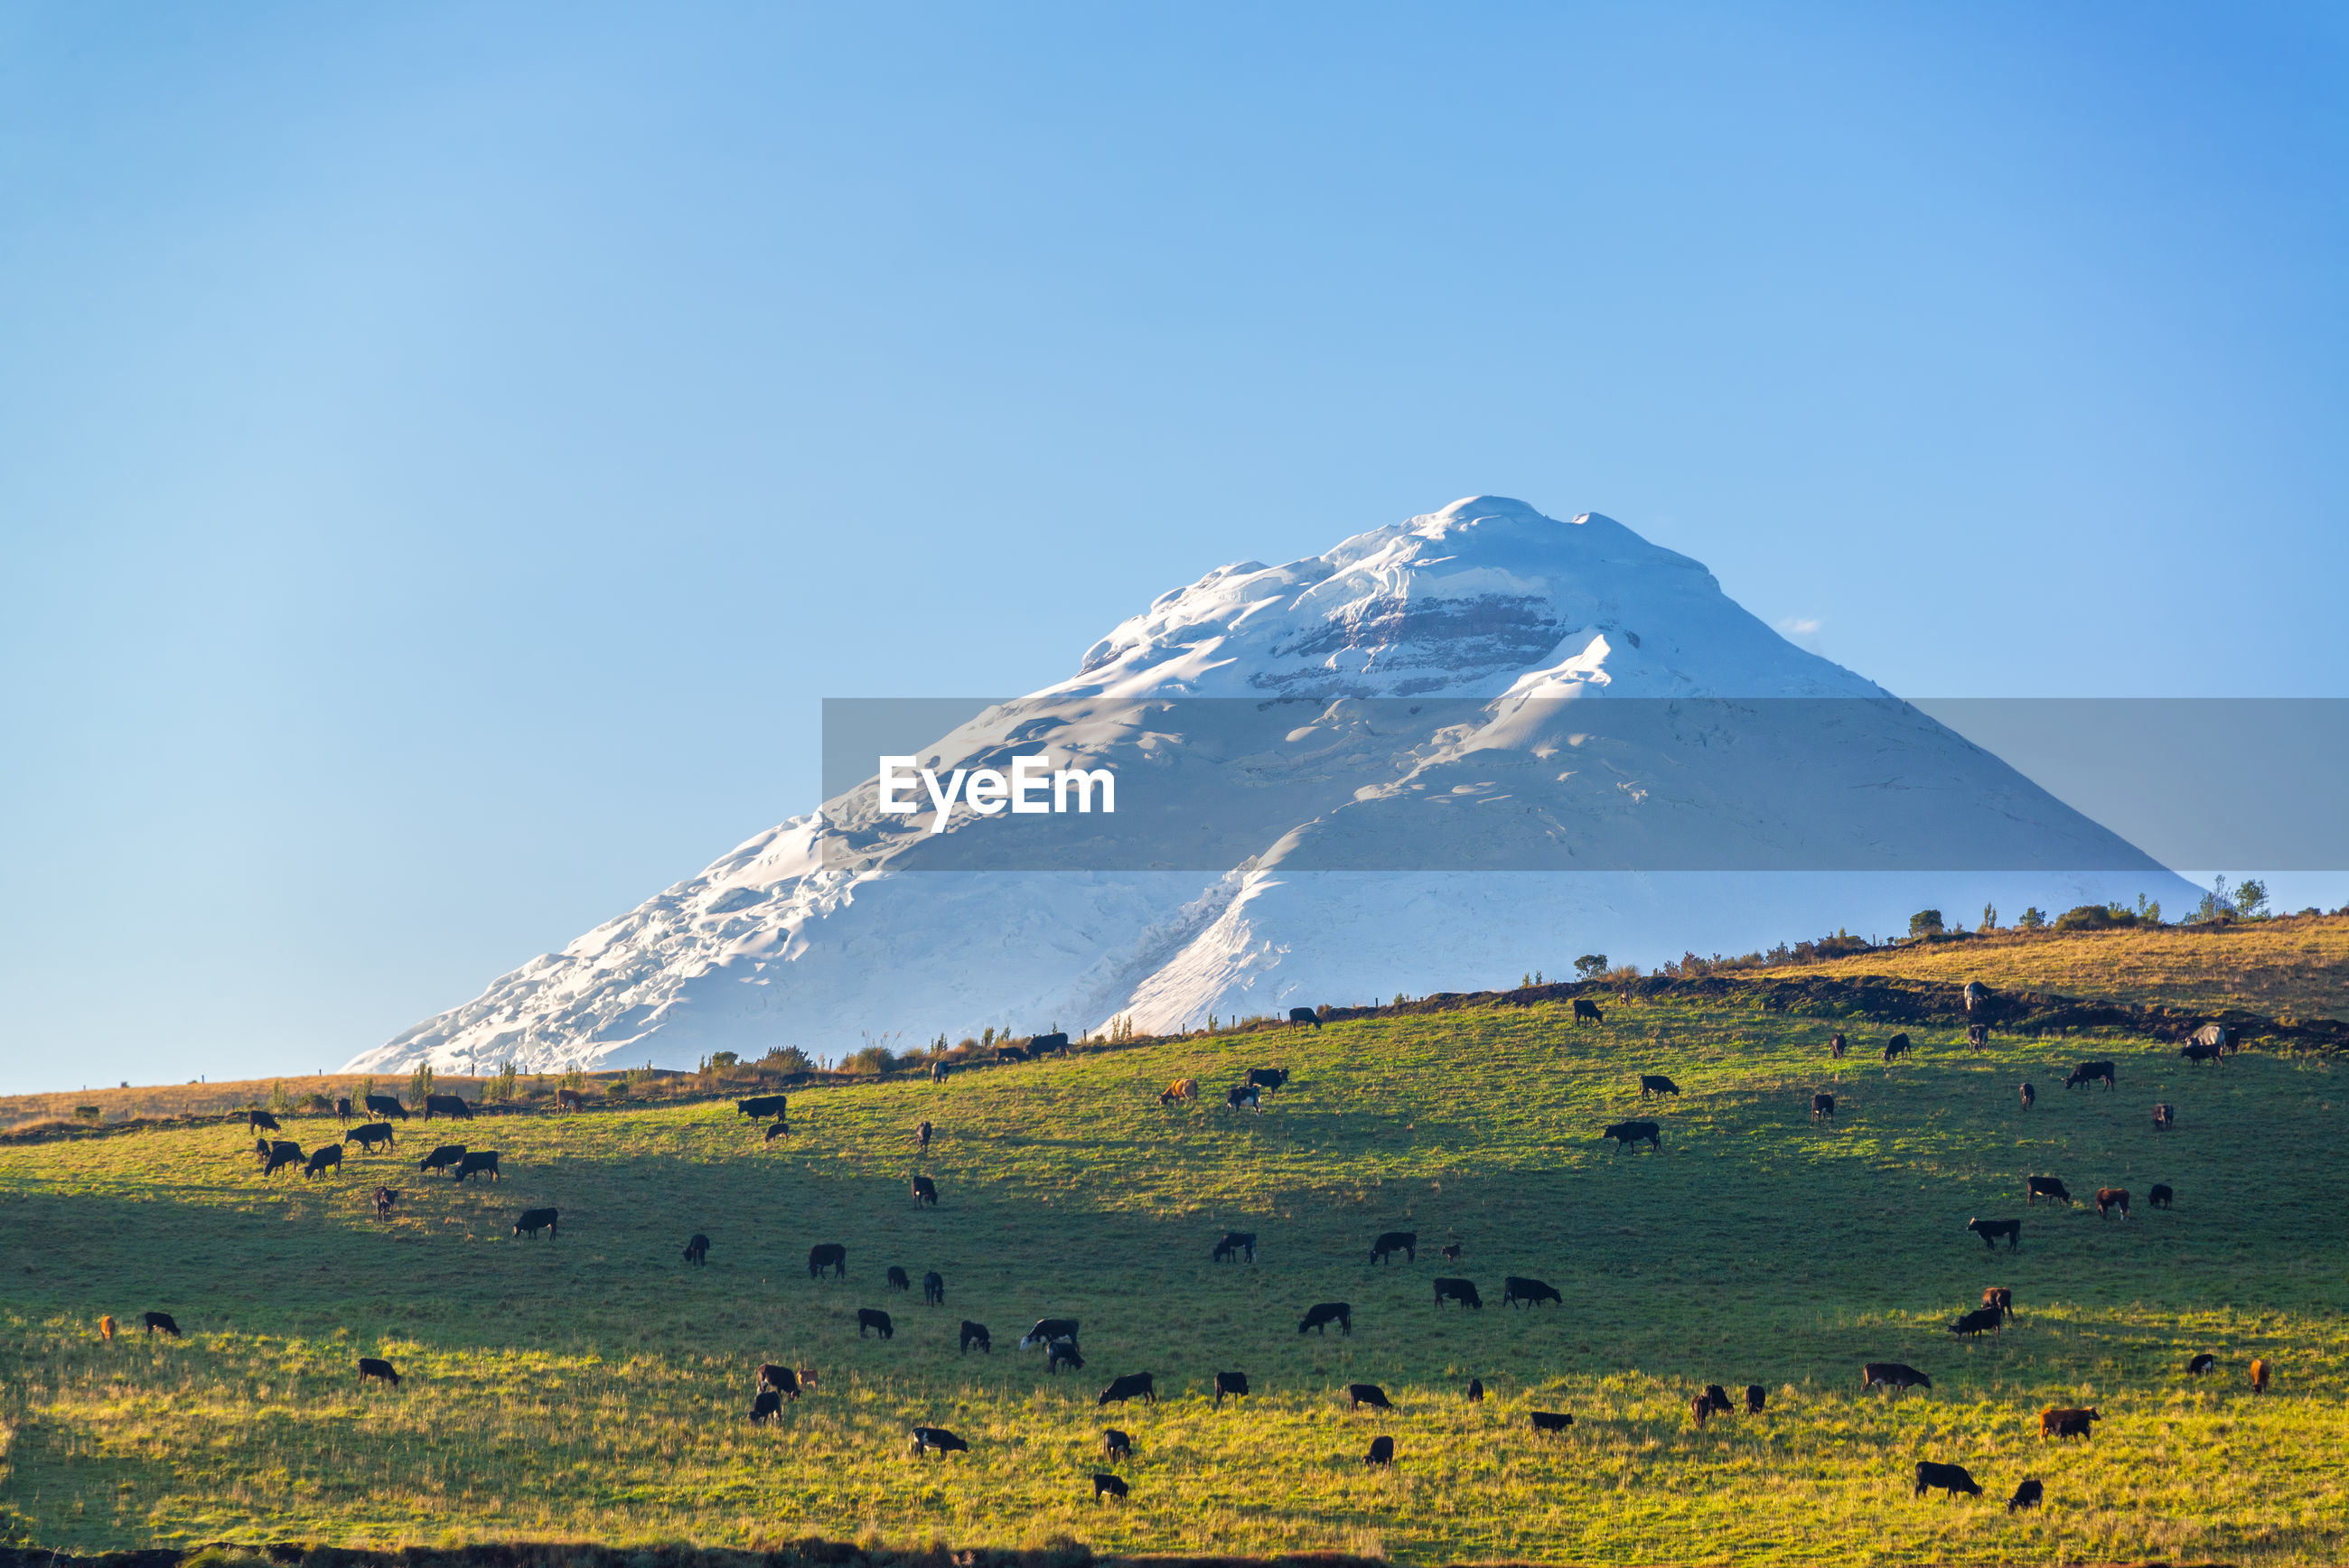 Cattle grazing on field against snowcapped mountain in background